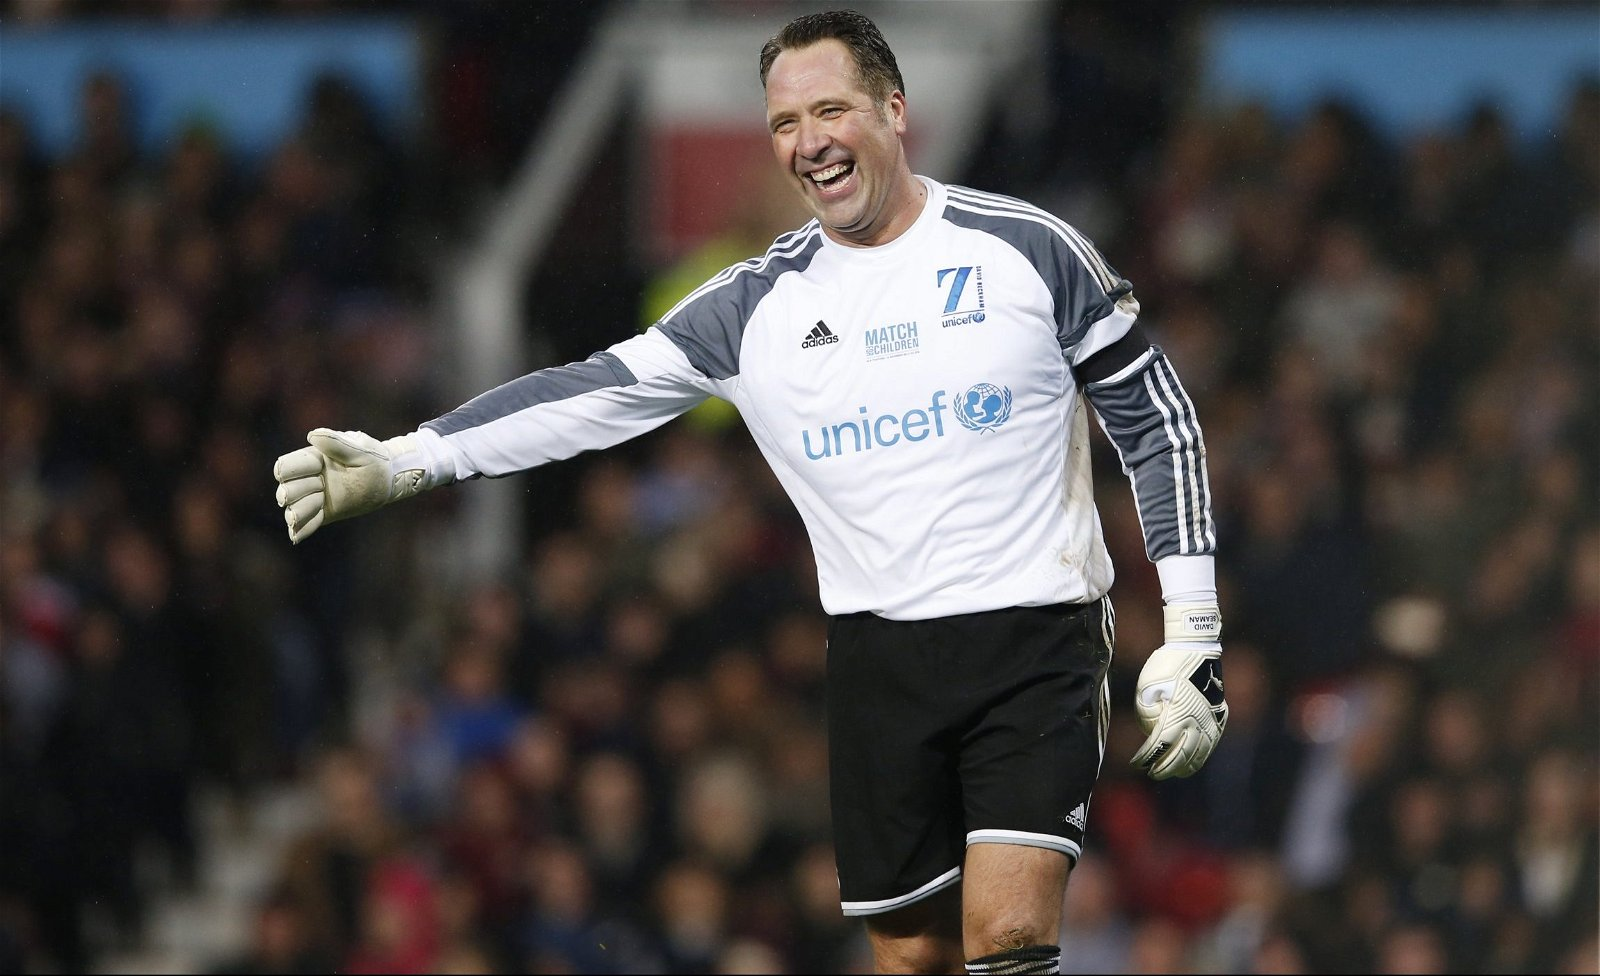 Hashtag United Wall of Fame: Arsenal and England legend David Seaman